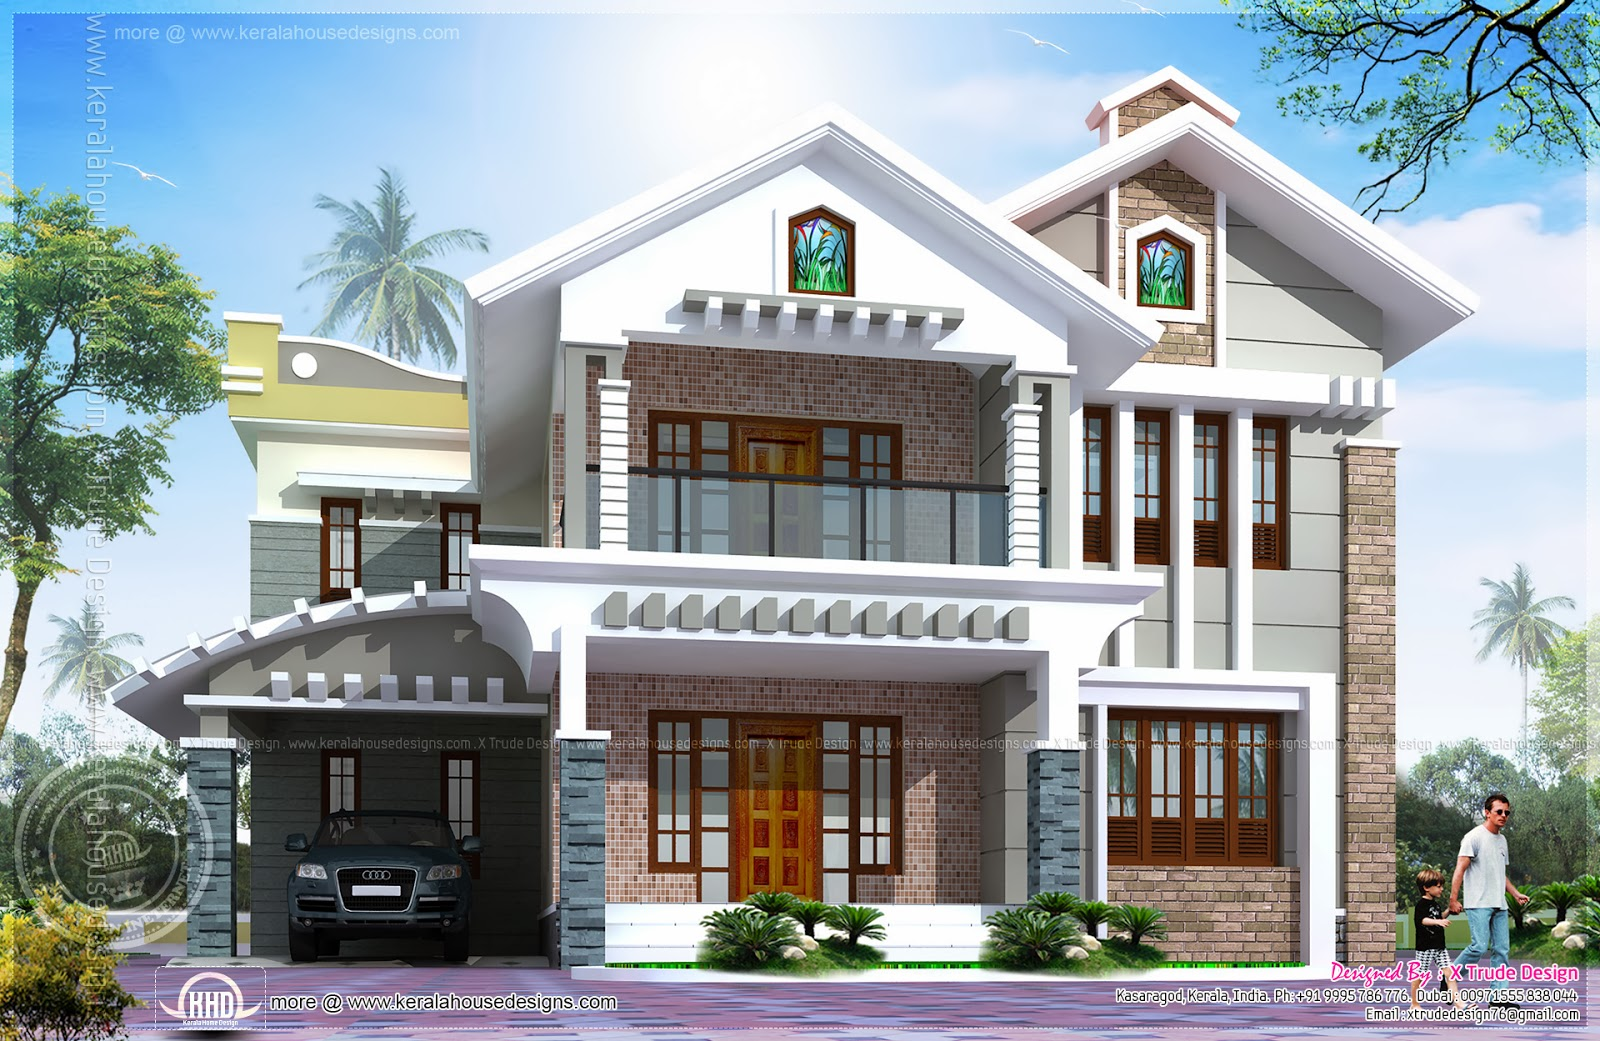 square feet luxury villa exterior kerala home design and floor plans